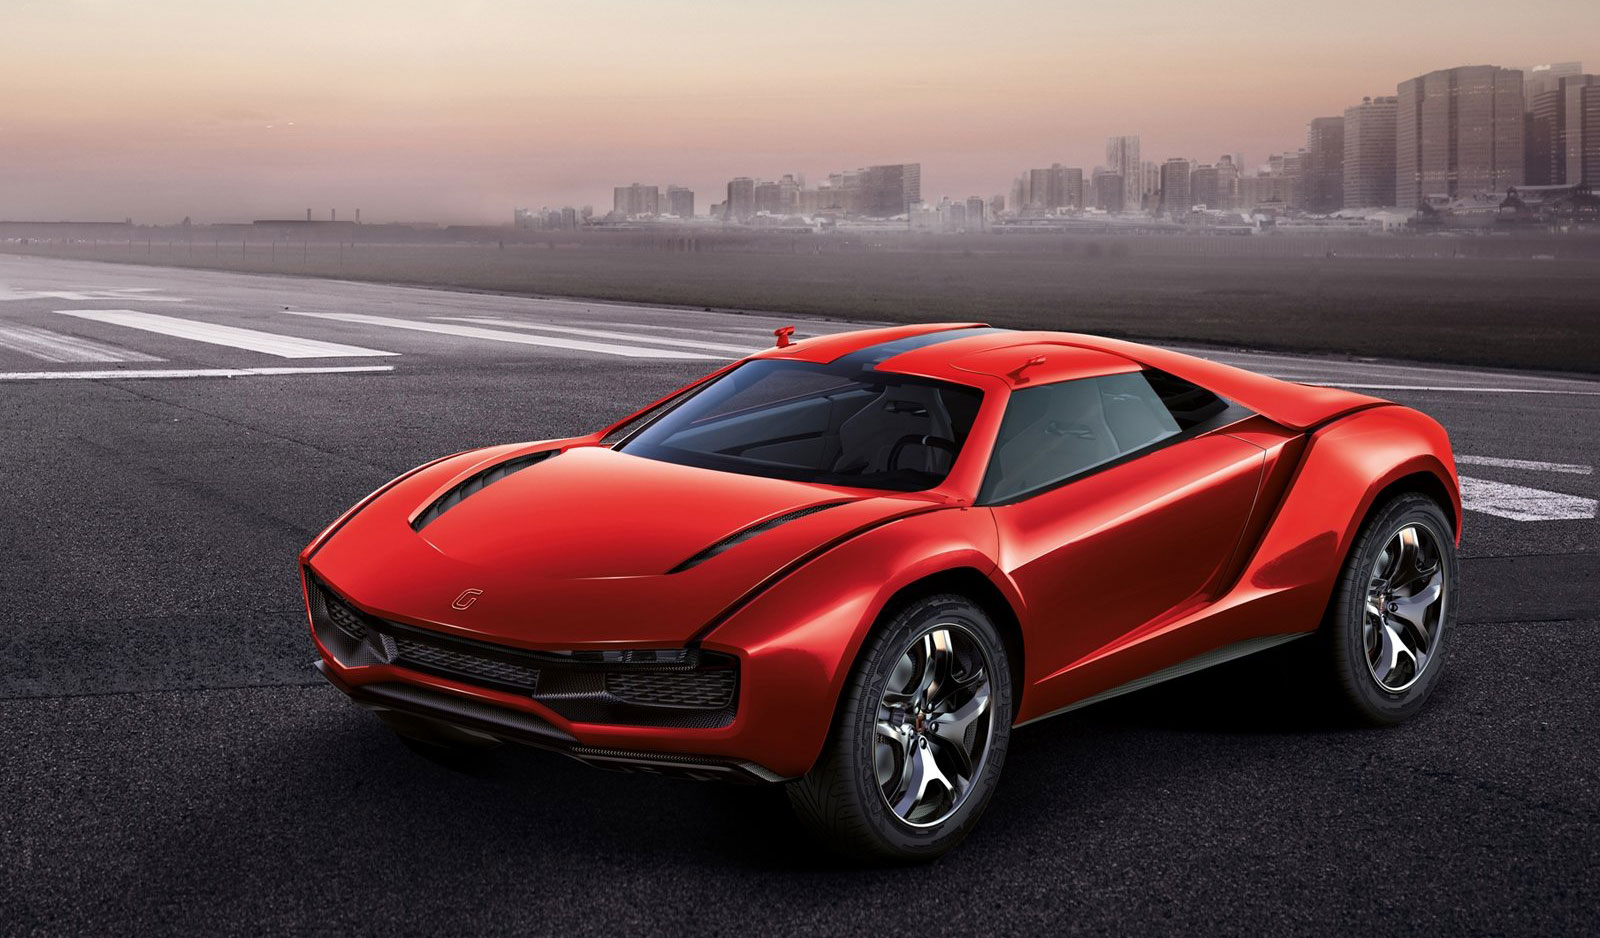 Italdesign Parcour Concept Supercar Suv Or Both Image